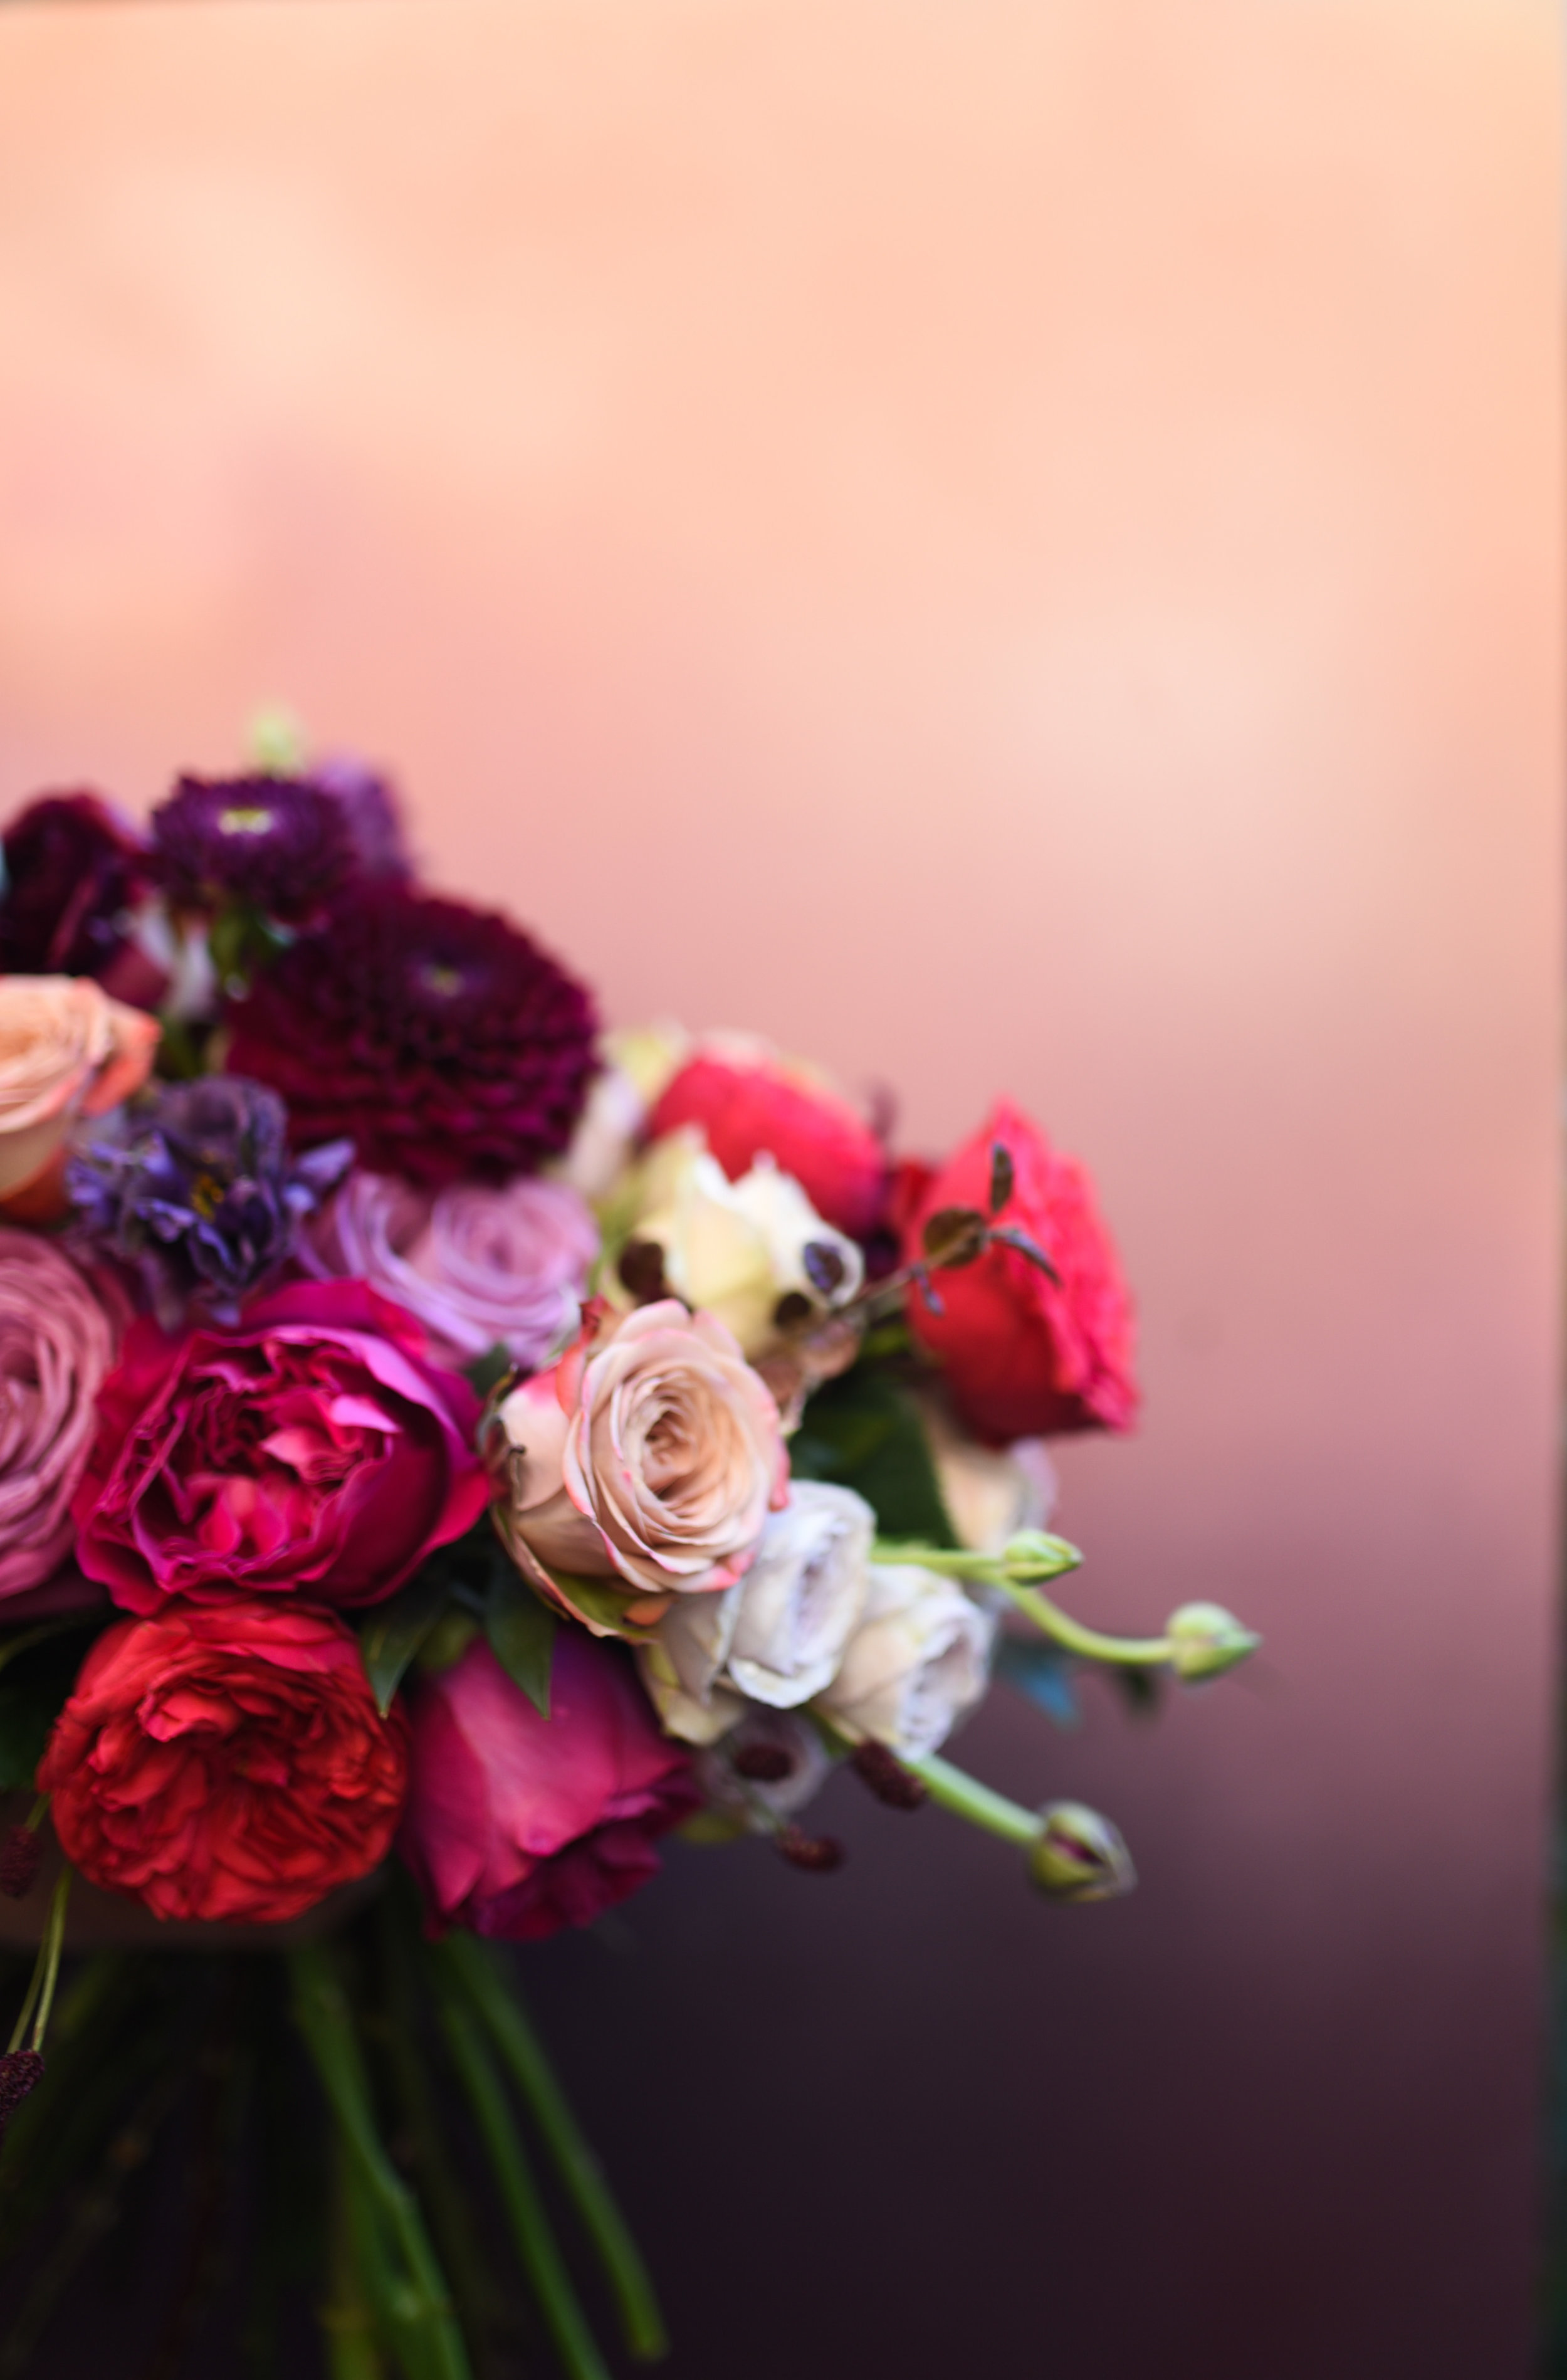 This view showcases the colors and varieties of tea and garden roses in this hand-tied bouquet